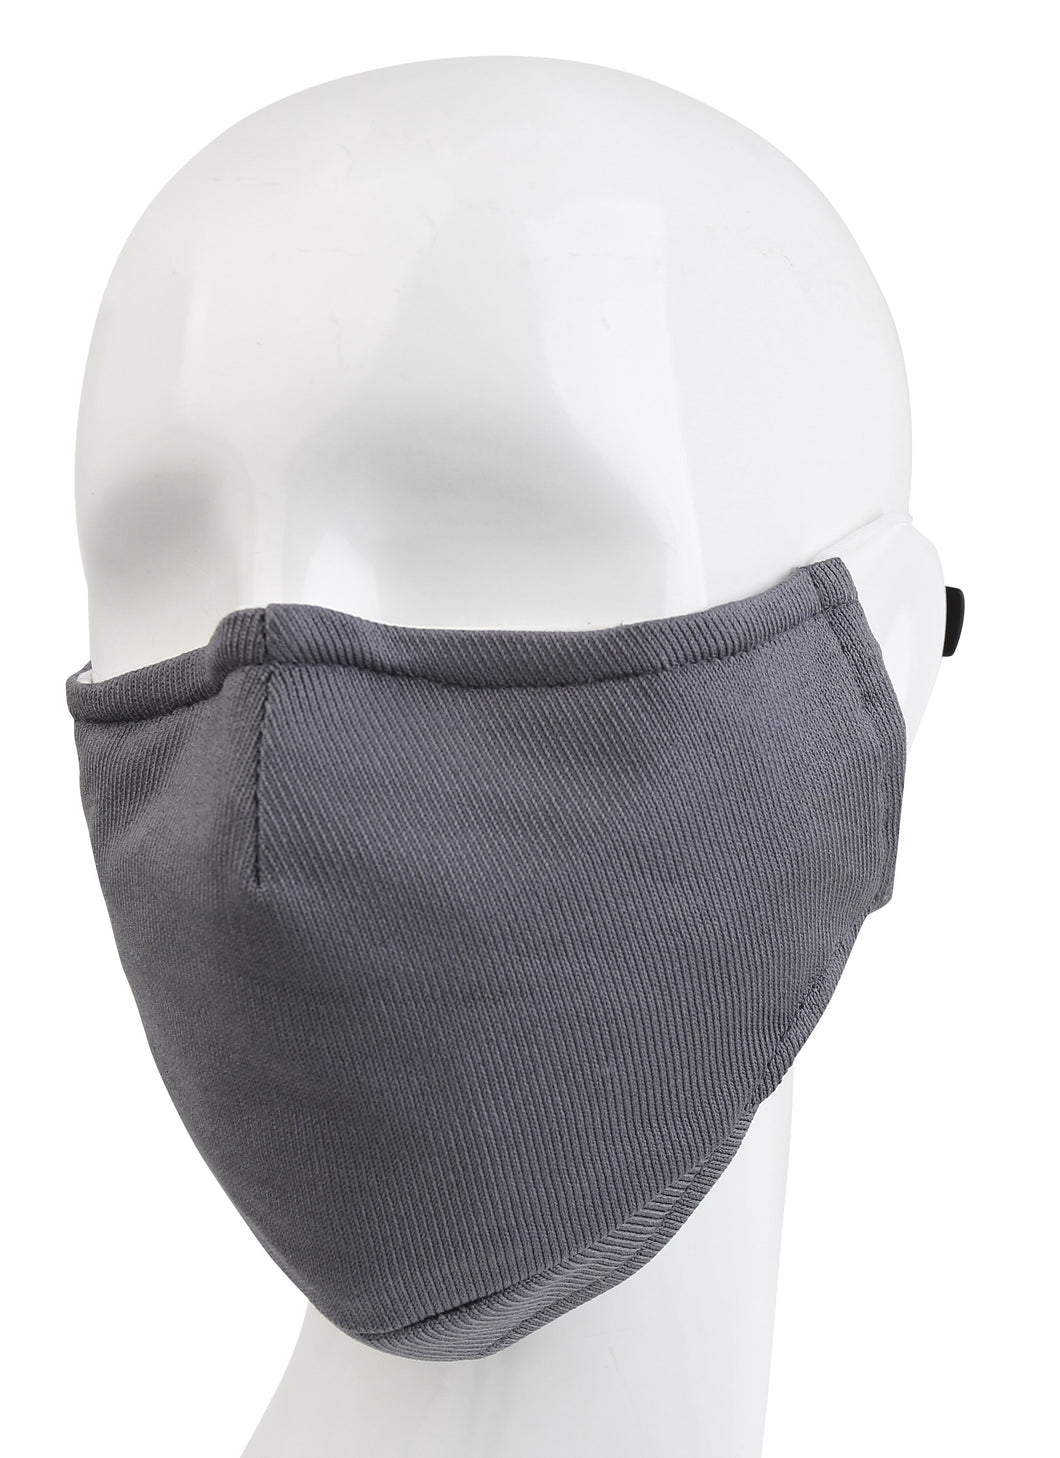 3 Ply Reusable Face Mask, Grey, Large, 1 Piece